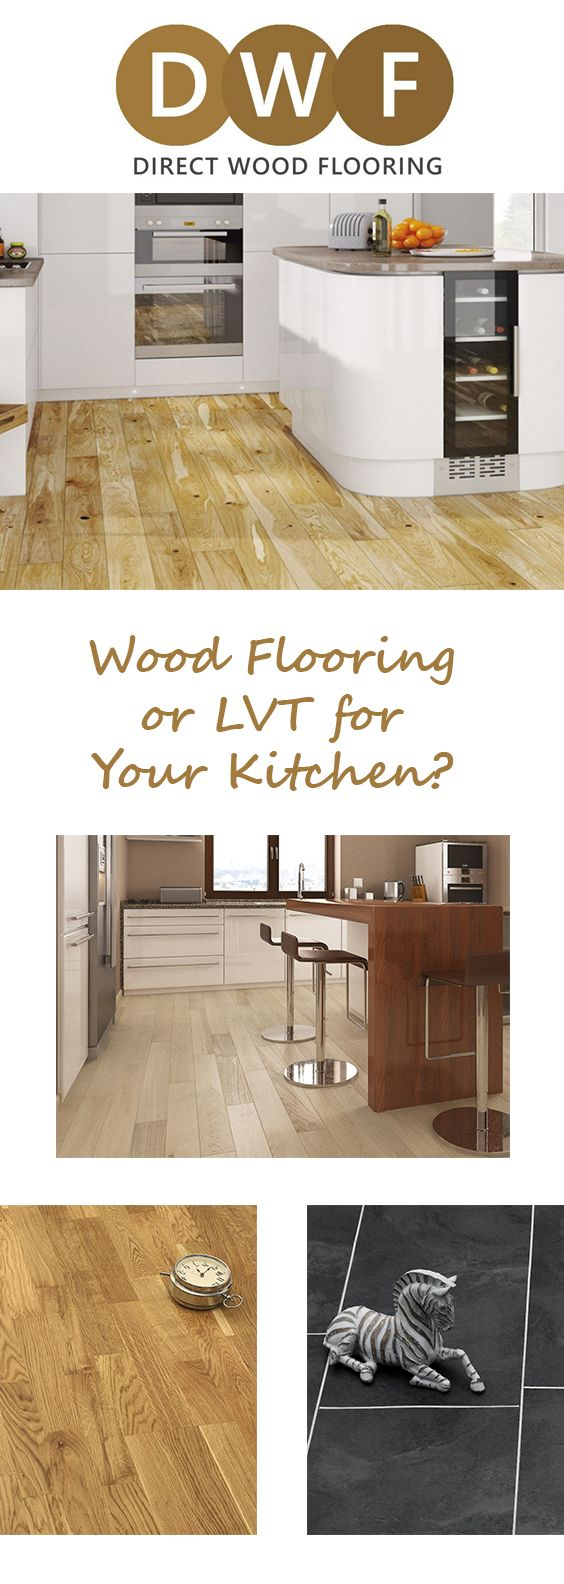 If you're re-flooring your kitchen and not sure what to choose, we've got the perfect guide for you. We've compared the benefits and drawbacks of using Wood Flooring or Luxury Vinyl Tiles in your kitchen.  As we're the flooring specialists, we thought it would only be fair to take out the guesswork and help you decide which is best for you!  Read the blog on our website: https://www.directwoodflooring.co.uk/dwfblog/wood-flooring-luxury-vinyl-tiles-kitchen  #WoodFlooring #EngineeredWood #LVT…